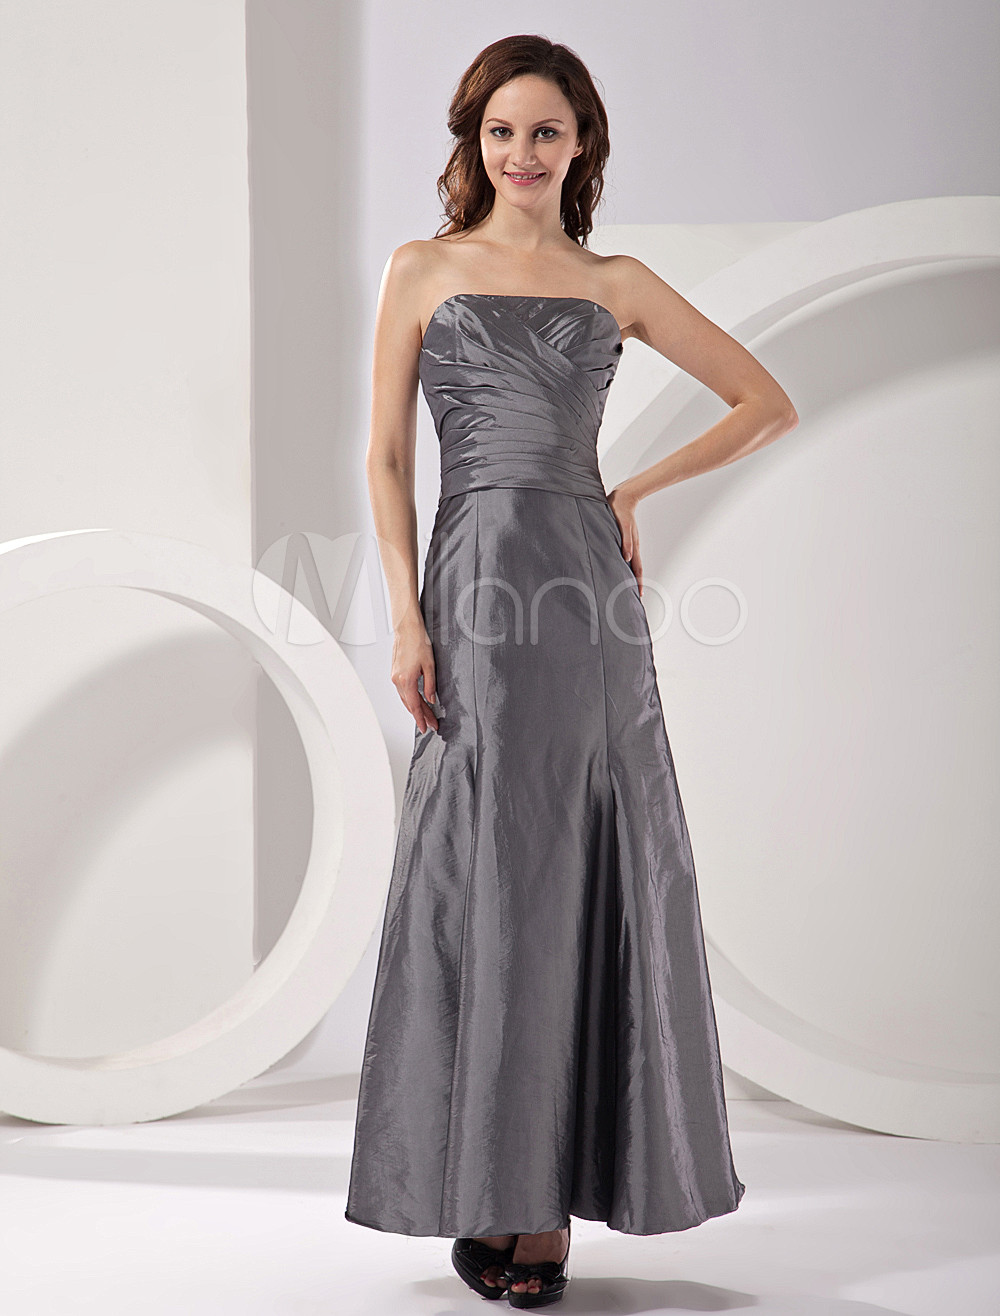 Silvery Strapless Satin Floor Length Womens Bridesmaid Dress